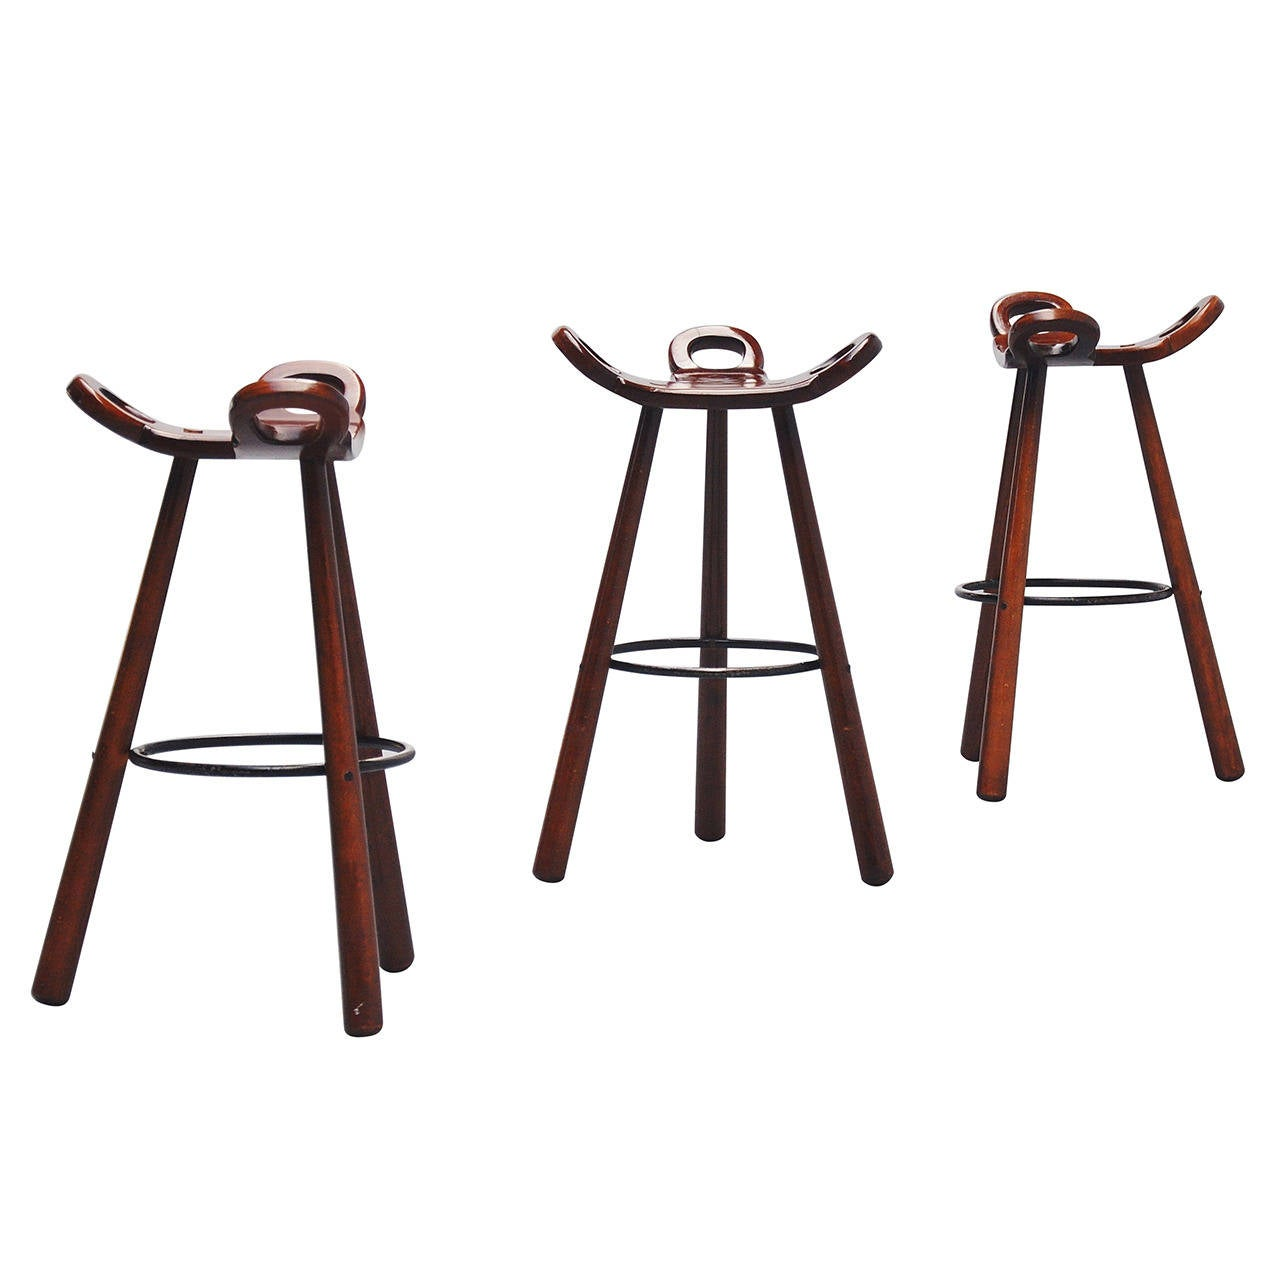 Wonderful image of Set of Three Spanish Brutalist Stools Marbella 1970 at 1stdibs with #6B352A color and 1280x1280 pixels